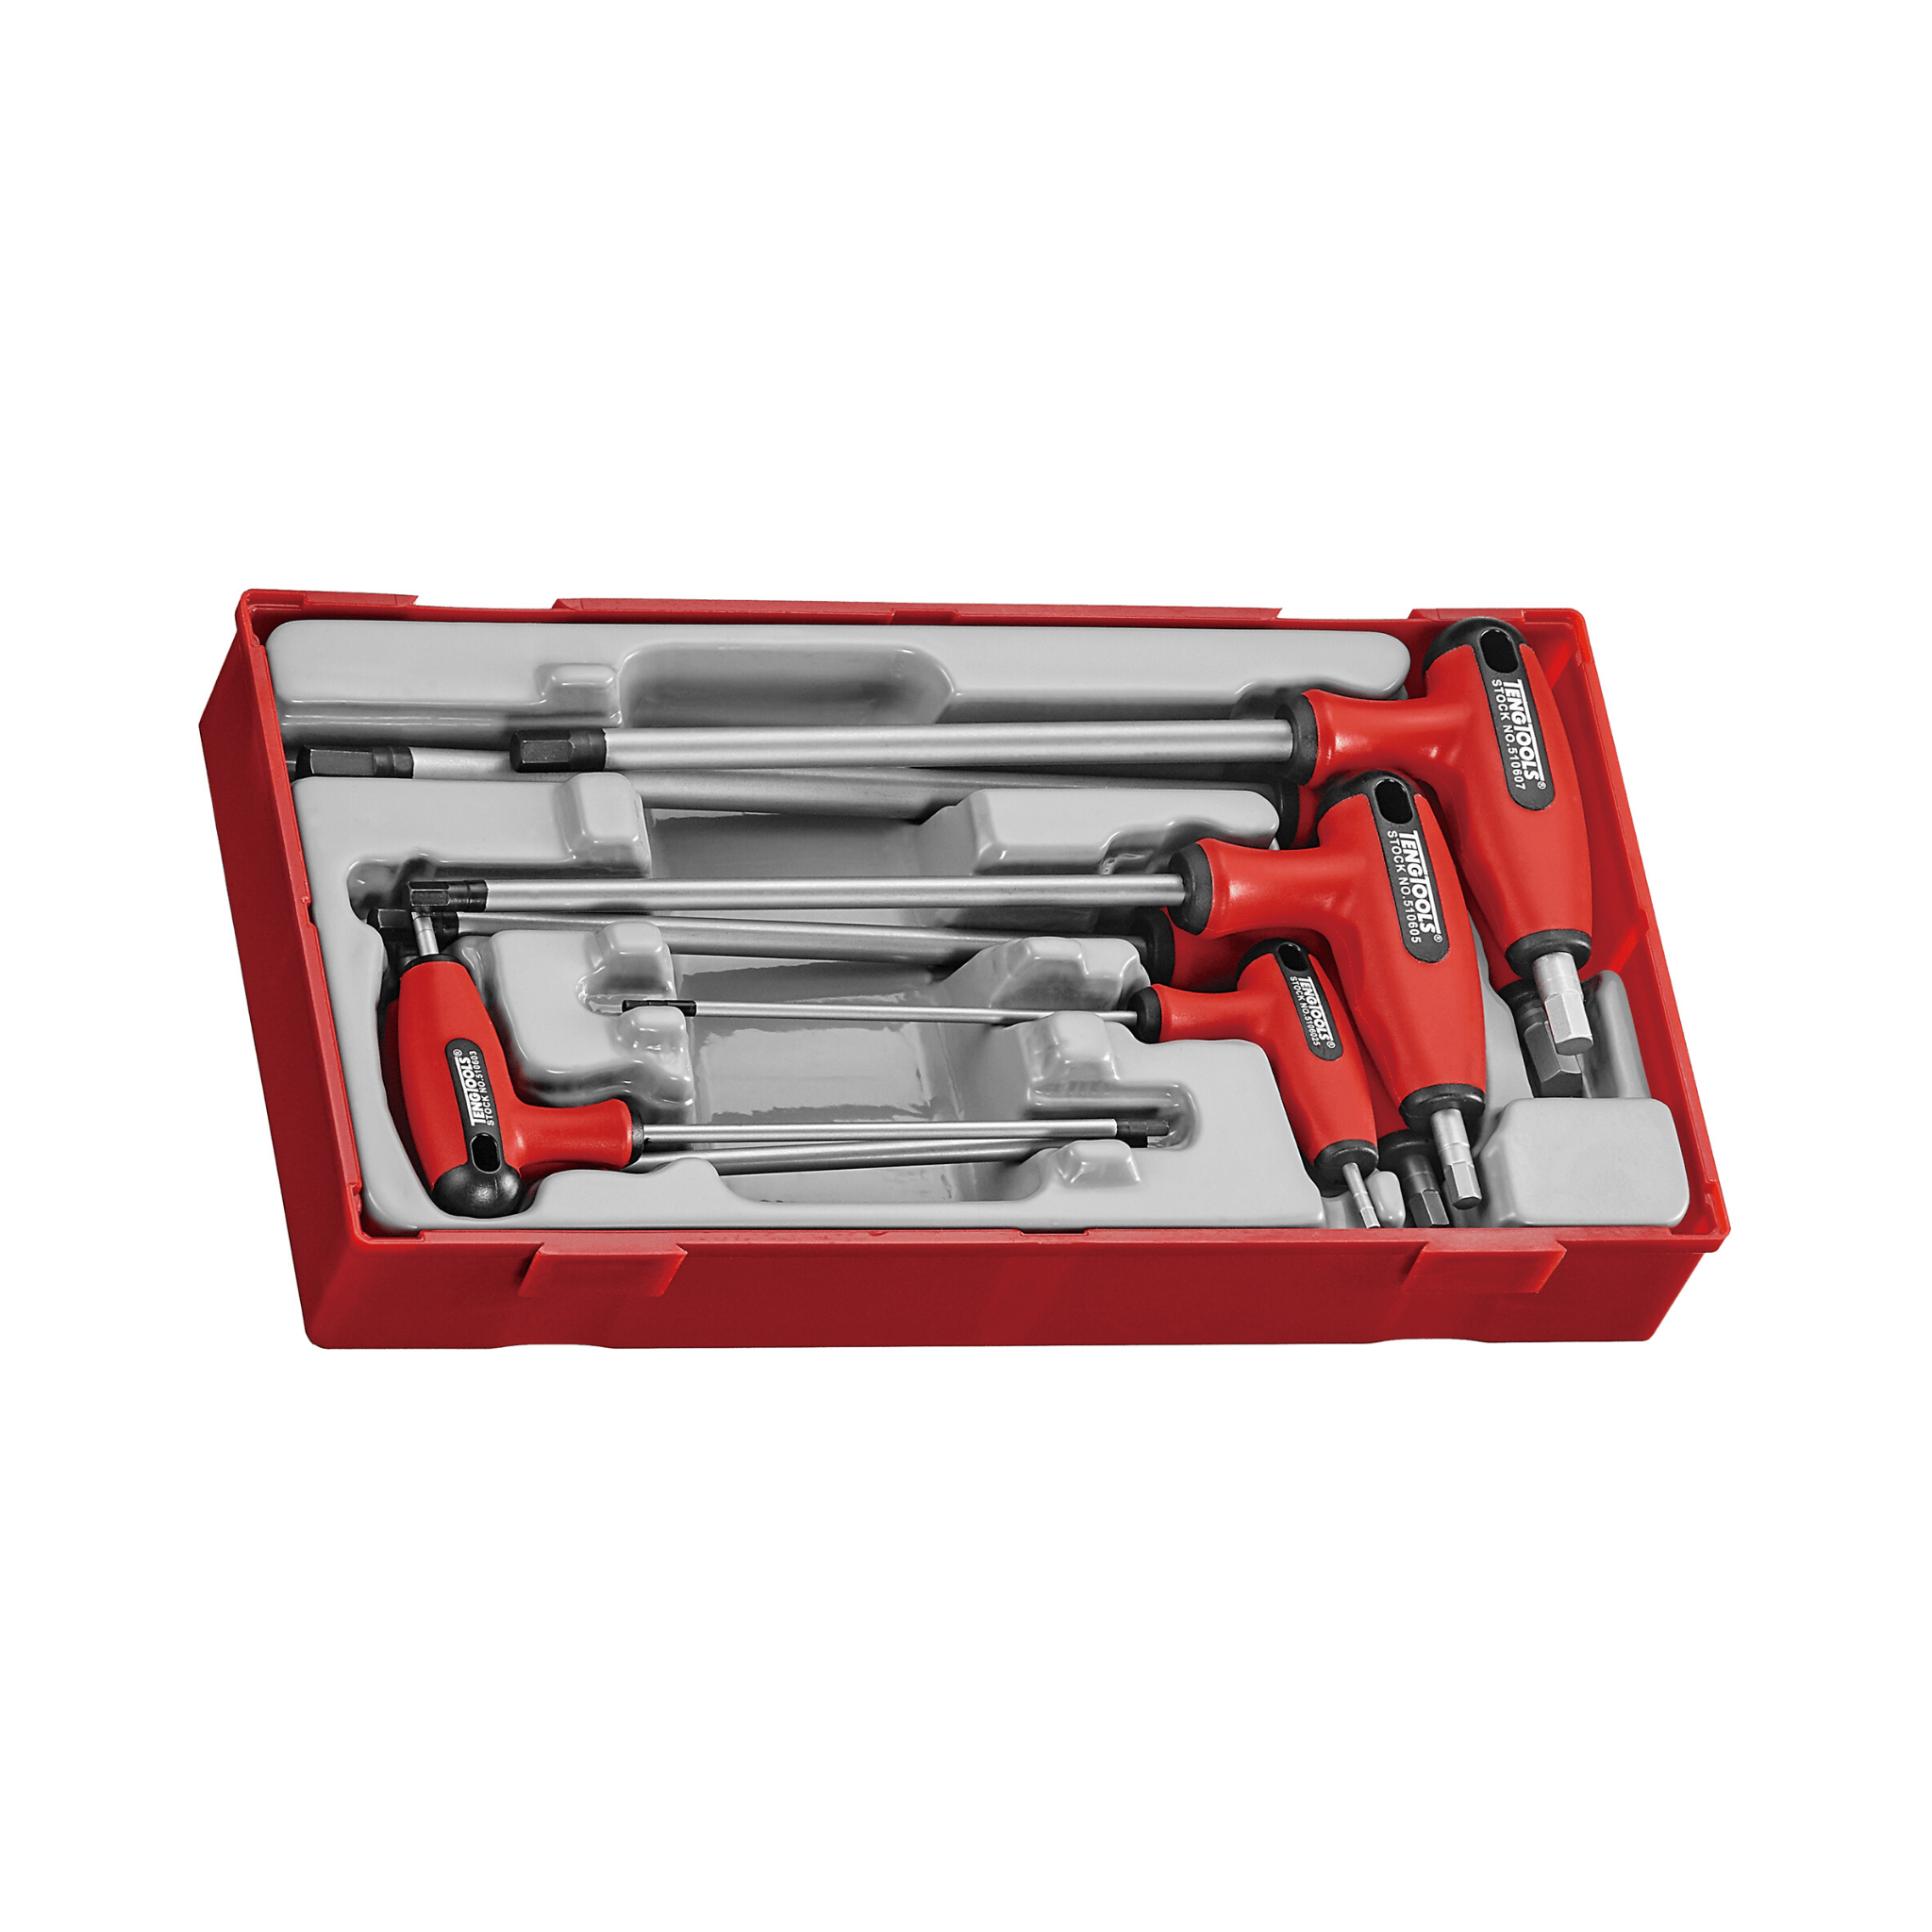 Teng Tools 7 Piece Metric T Handle Hex Key Allen Wrench Driver Set (2.5MM to 8MM) - TTHEX7S